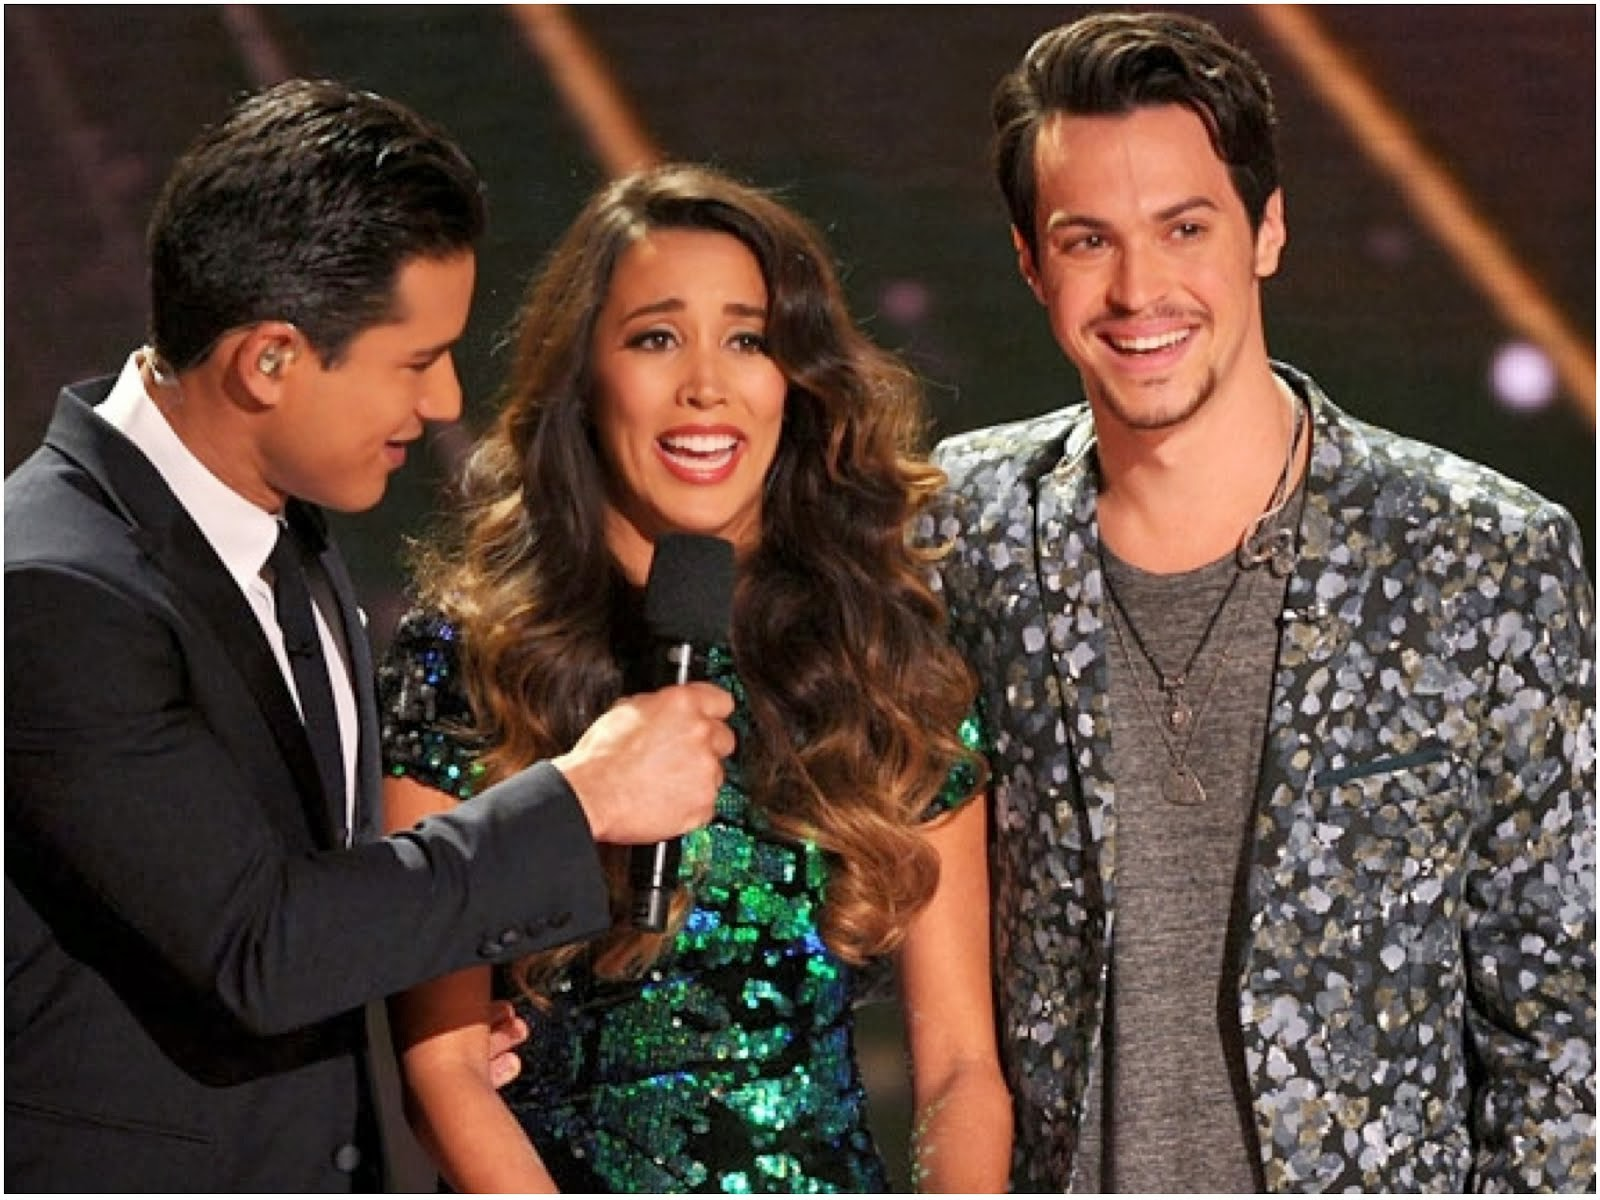 Alex Kinsey of Alex & Sierra in Topman BLACK MONOCHROME FLORAL SKINNY BLAZER - X Factor USA Finals